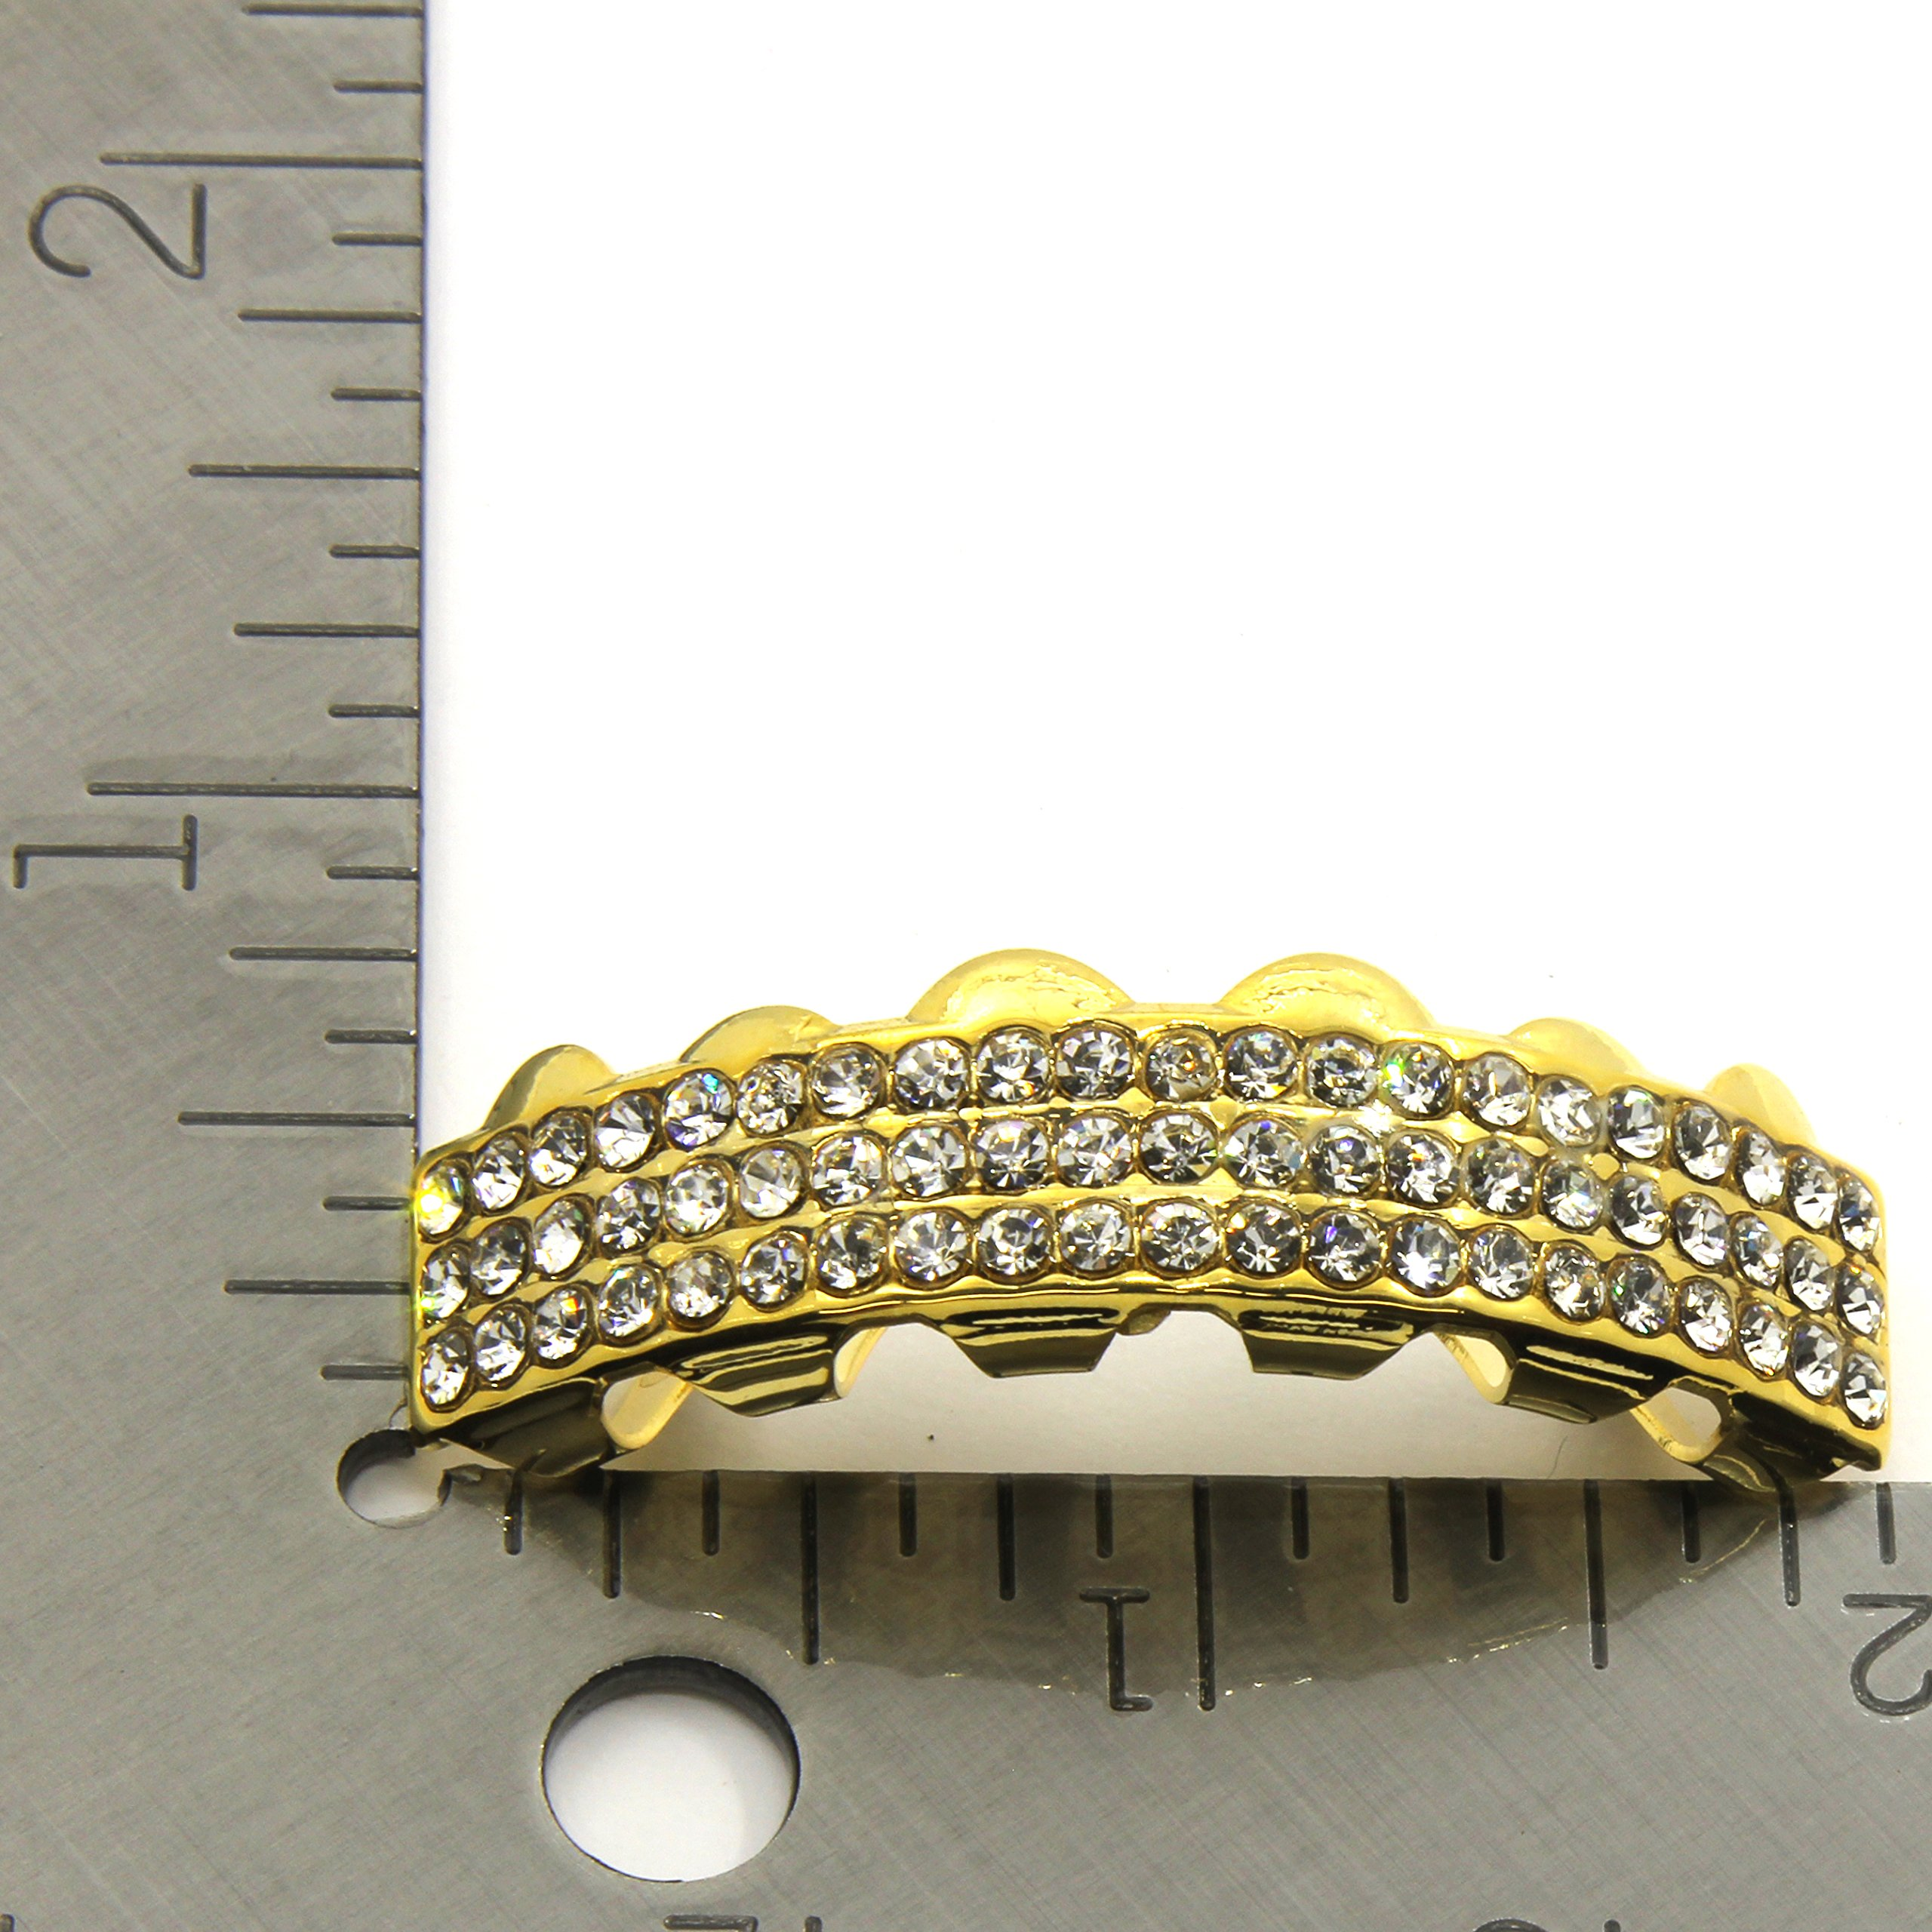 Gold/Clear Top & Bottom 6 deck Hiphop bling Grillz Set - Gold Plated